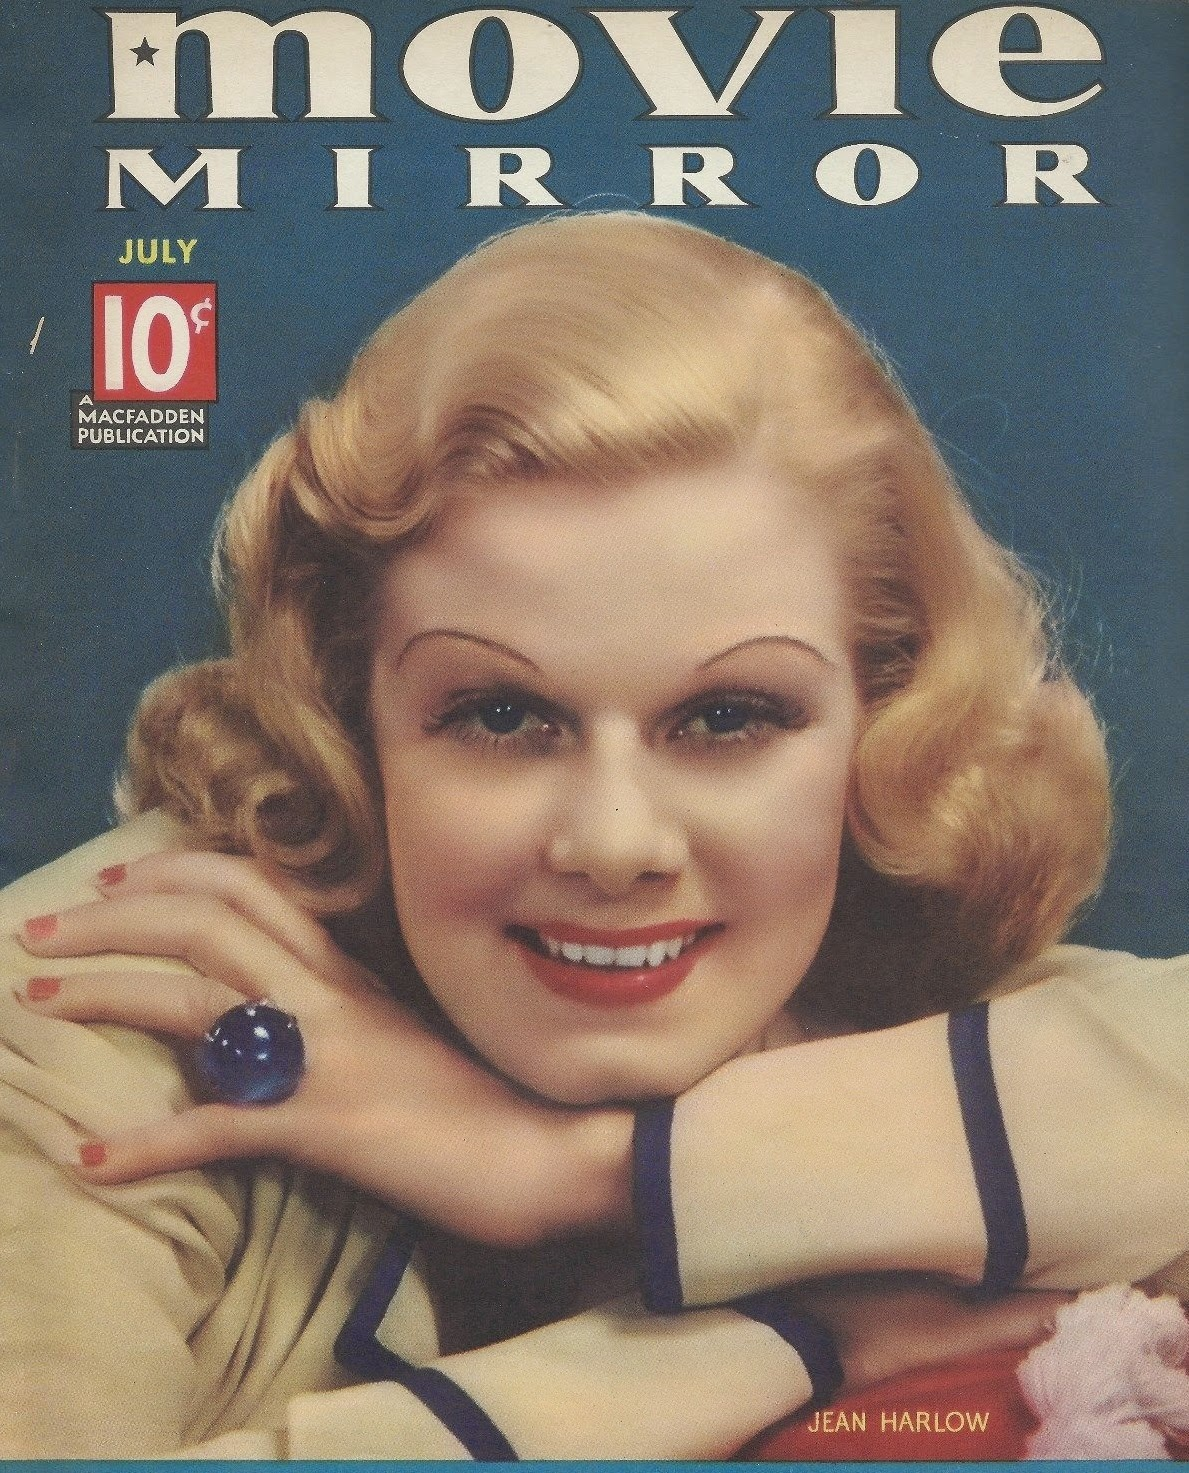 Imaginemdd william powell and jean harlow the sapphire ring for Mirror 1 movie